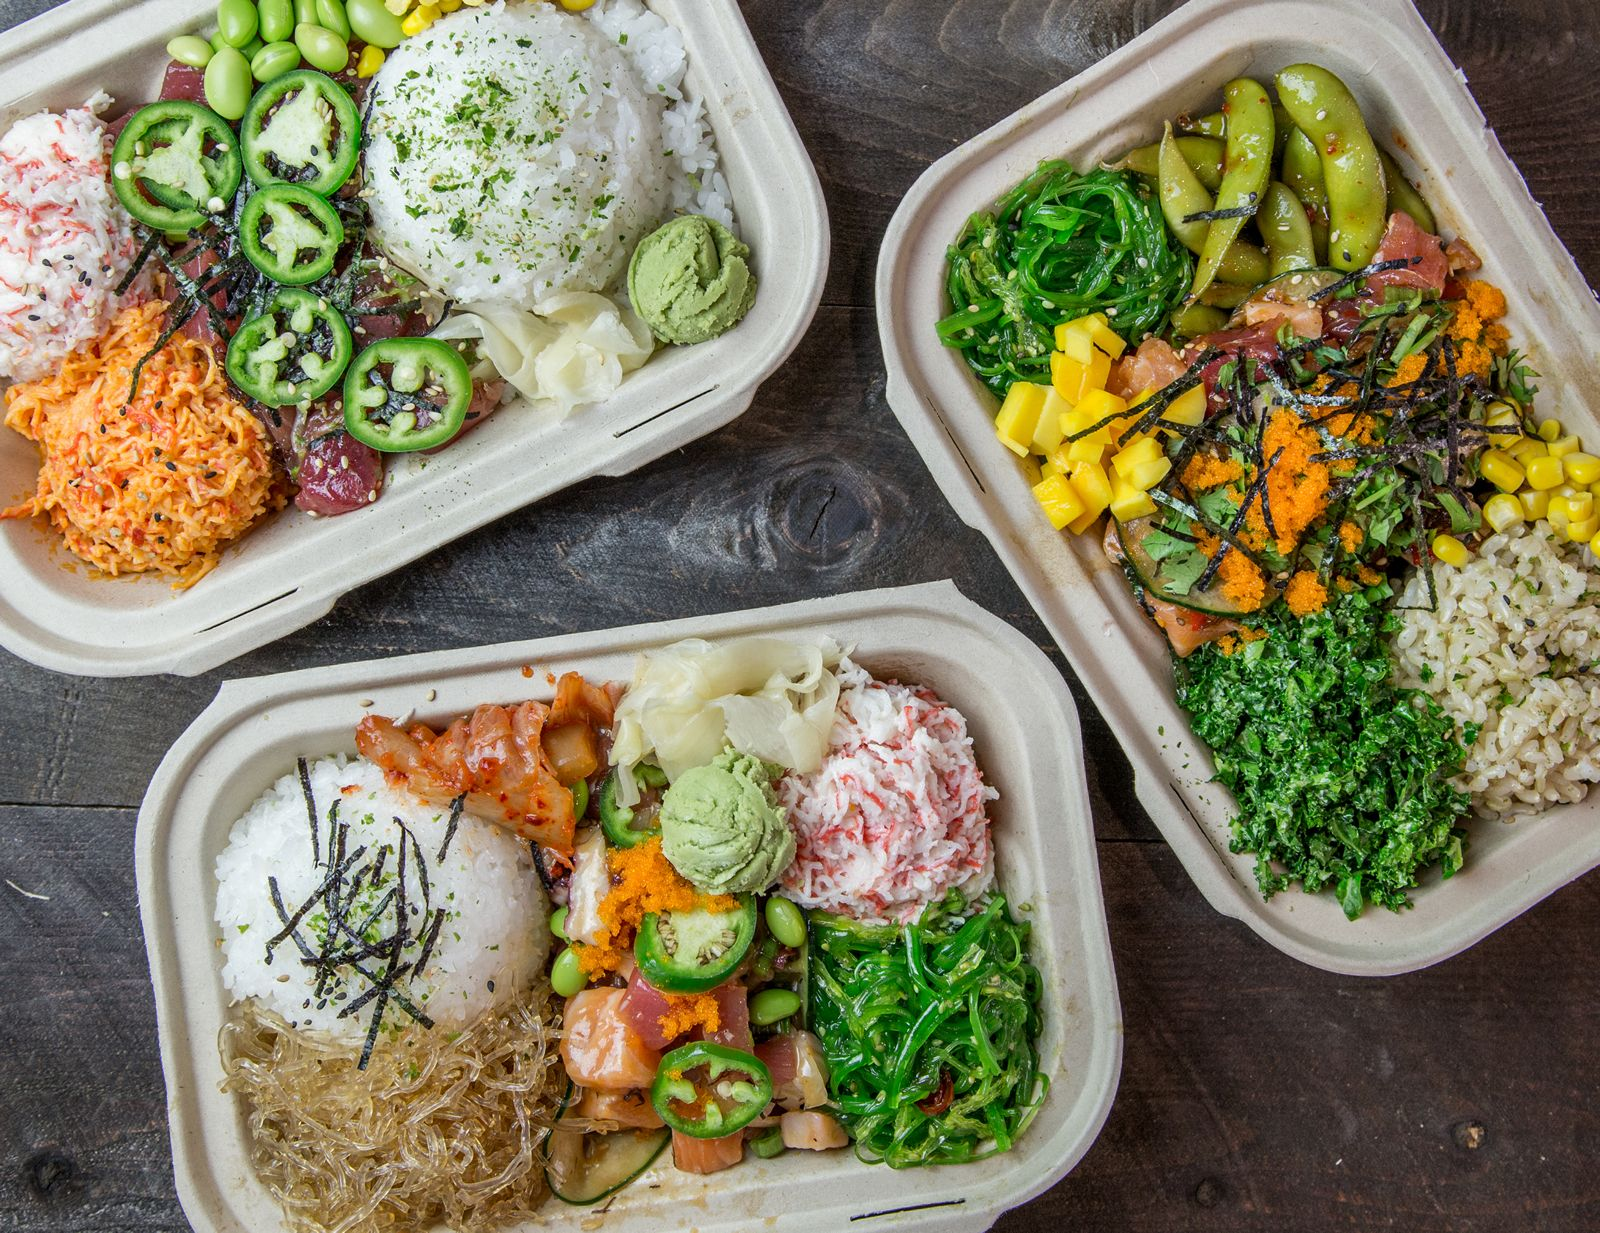 Pokeatery, the rapidly growing build-your-own poké concept on a mission to bring classic Hawaiian flavors to the mainland, has signed with Revelry Food Group to bring the budding poké franchise to southern Louisiana. The first location is planned to open in the city of Houma within the next year.